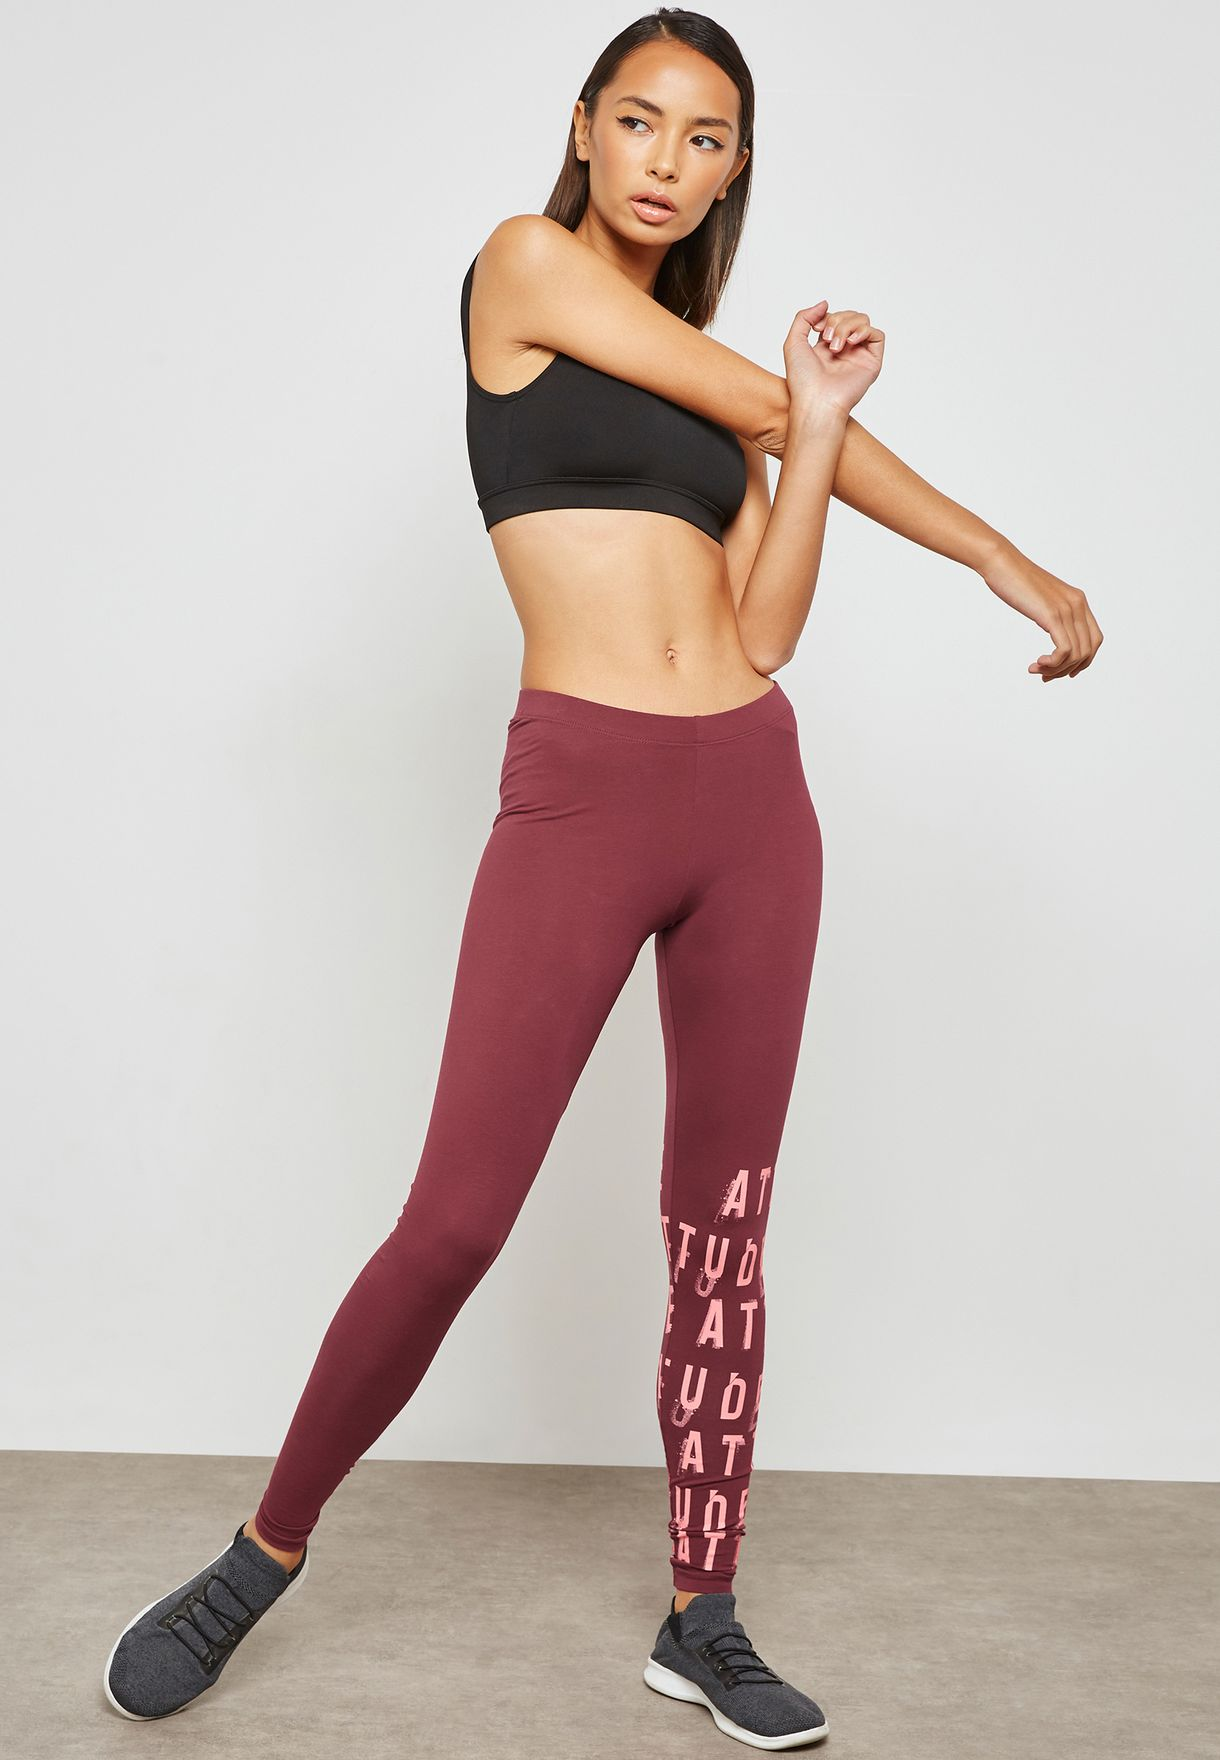 Slogan Leggings